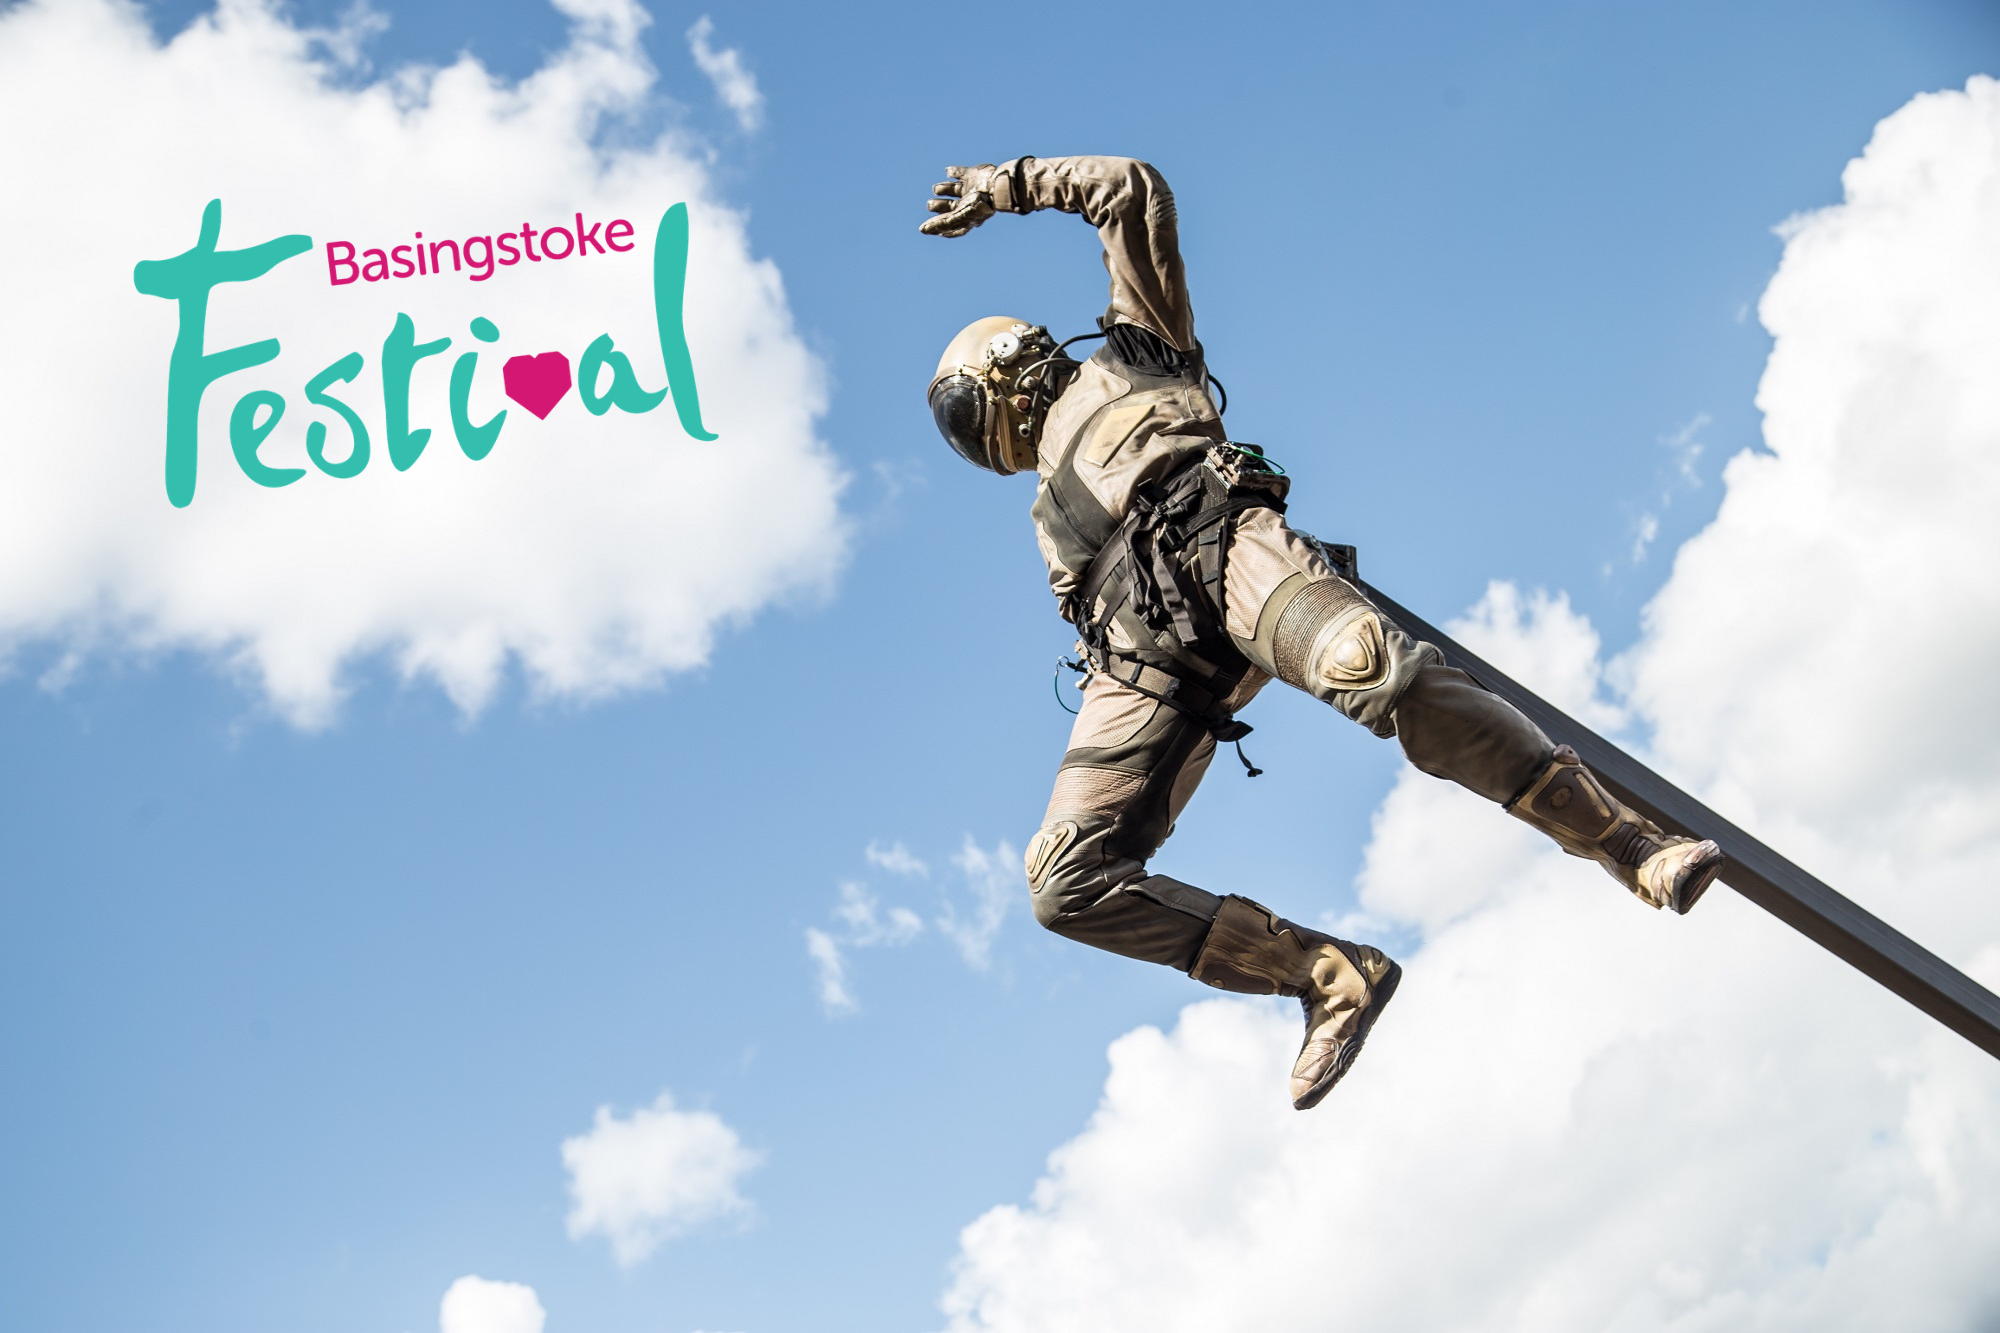 https://www.basingstokefestival.co.uk/wp-content/uploads/2021/04/Urban-astronaut-and-logo.png